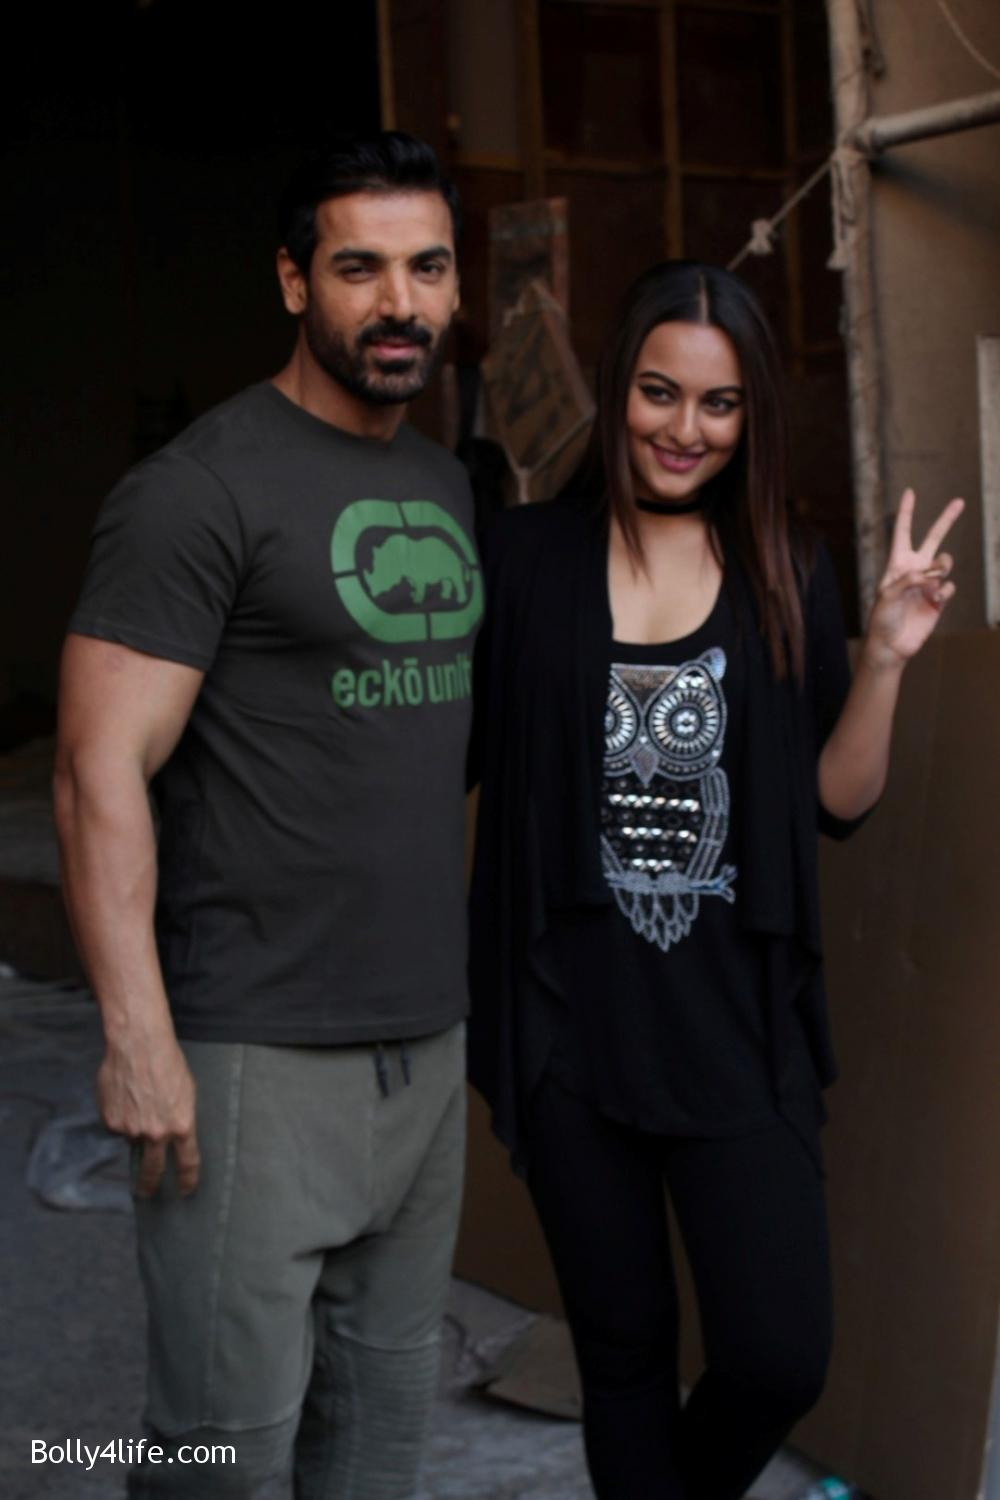 John-Abraham-and-Sonakshi-Sinha-iduring-the-press-conference-of-upcoming-film-Force-2-14.jpg